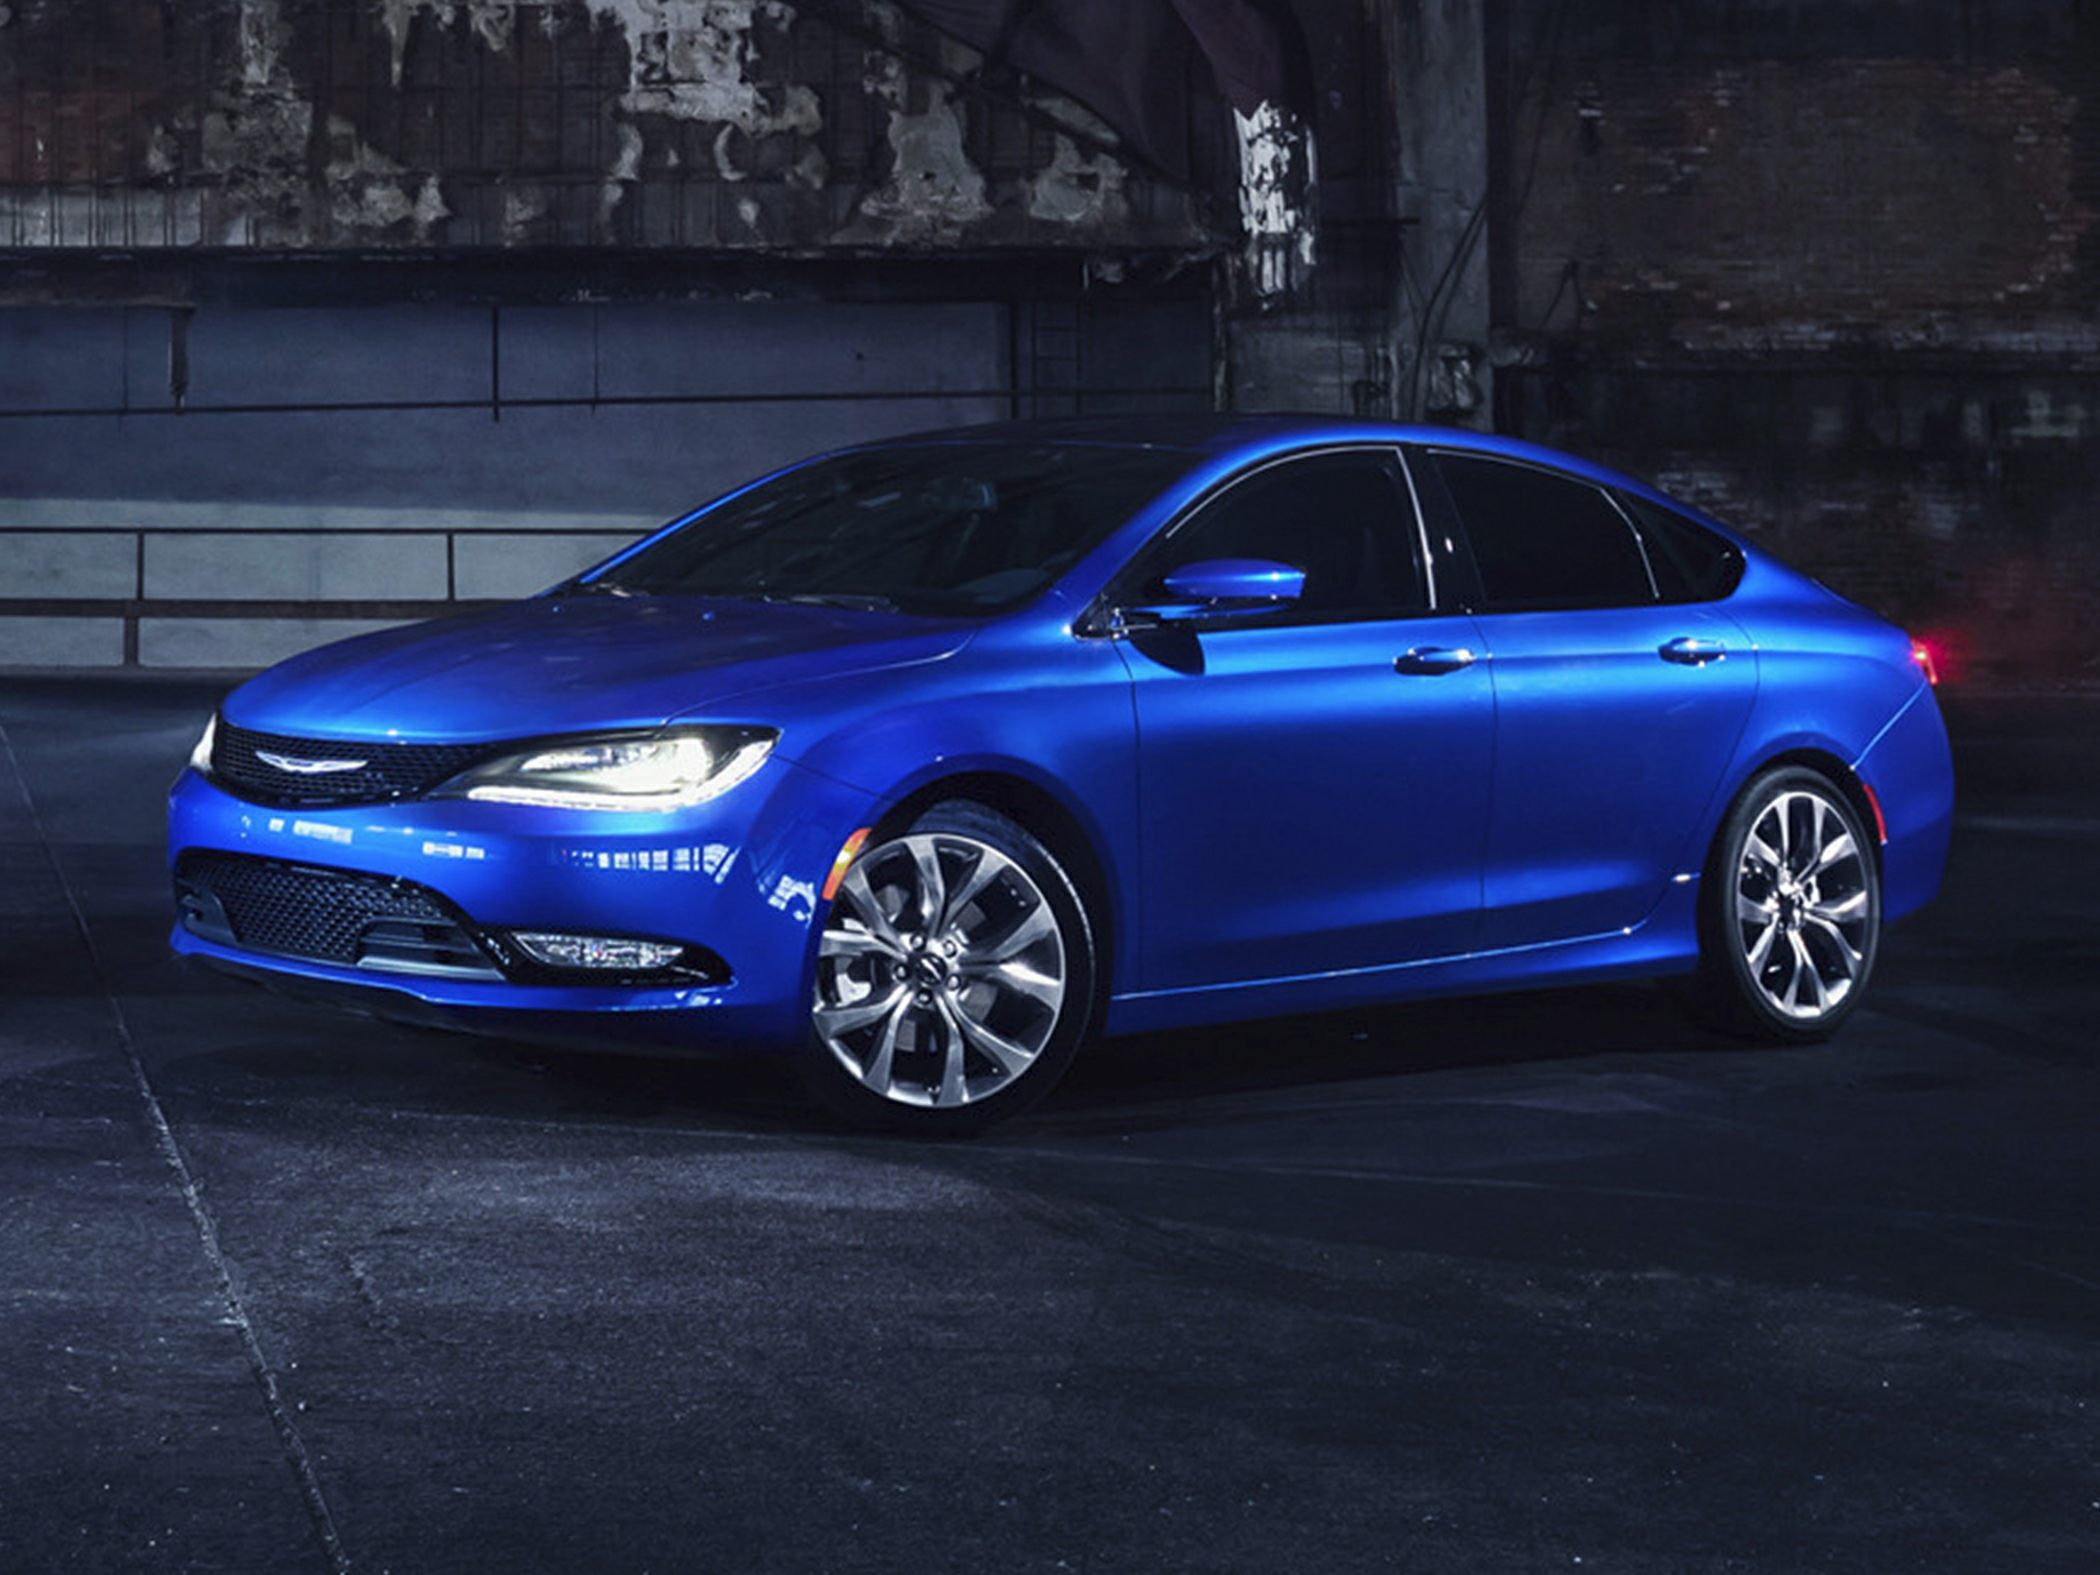 2015 Chrysler 200 Glam2